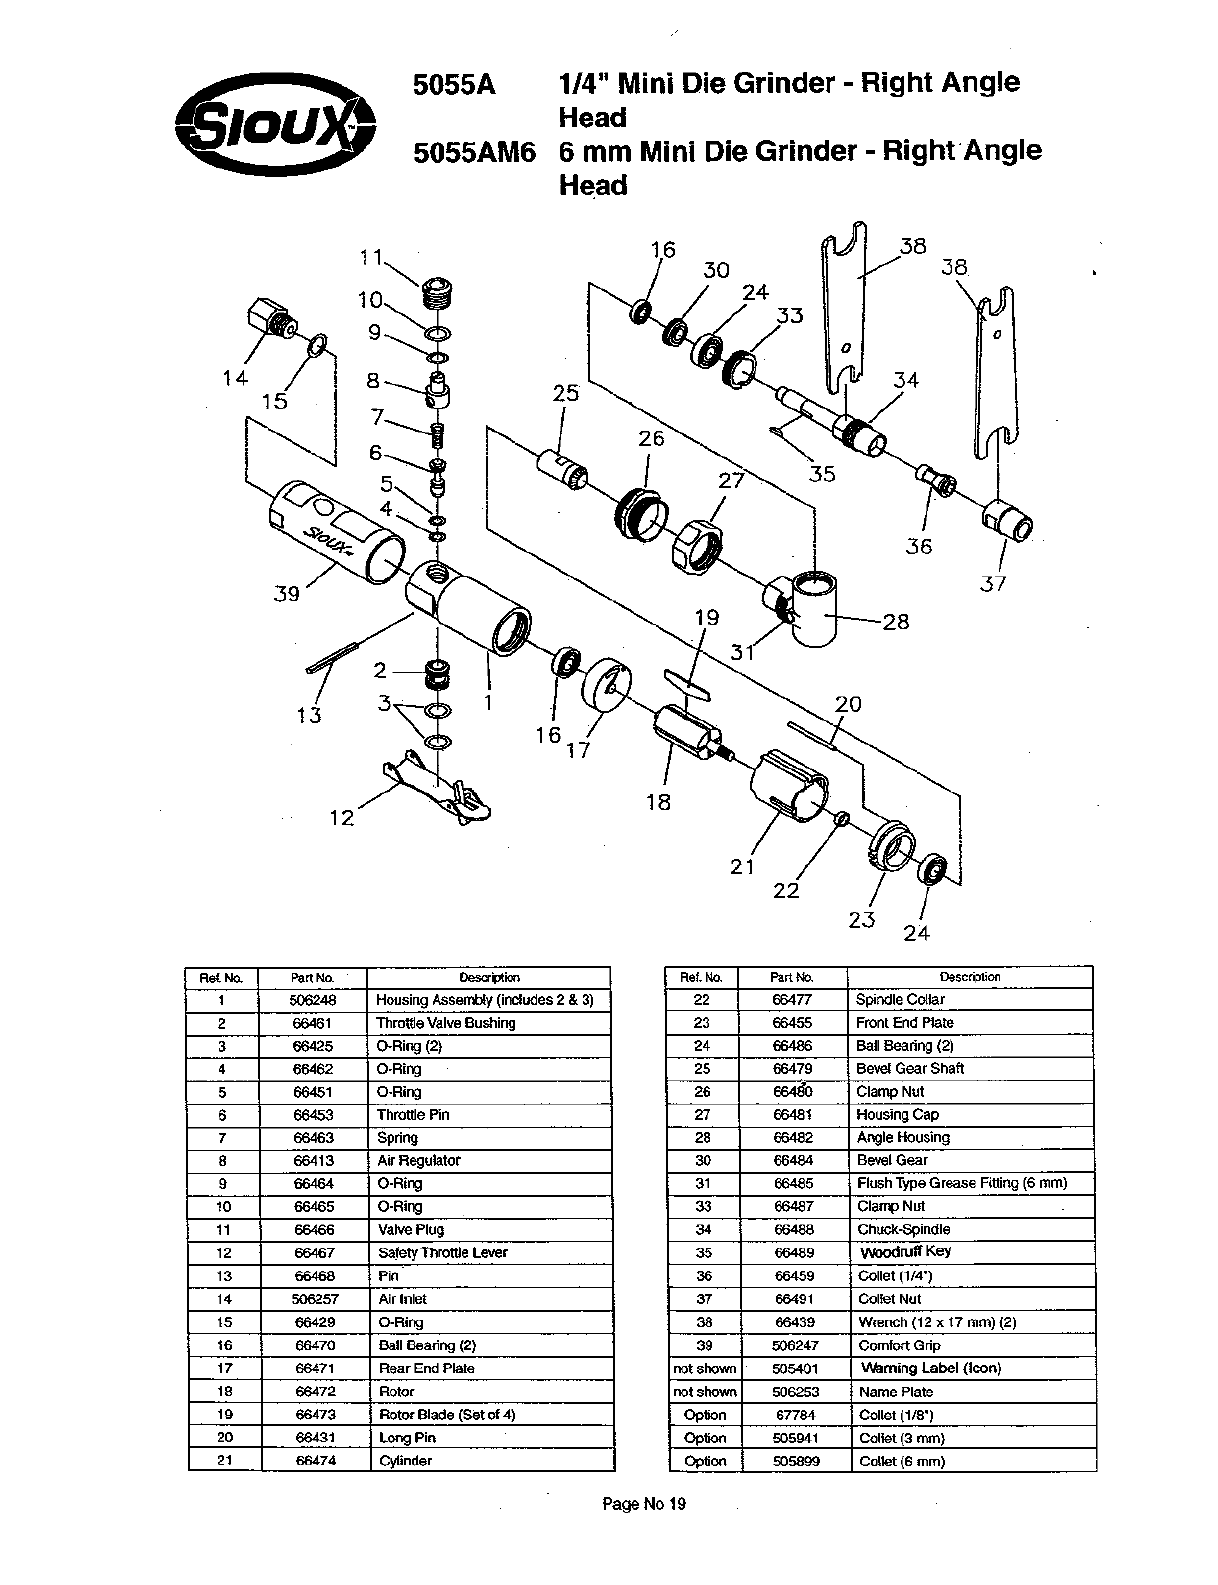 Page 19 of Sioux Tools Grinder 5055A User Guide